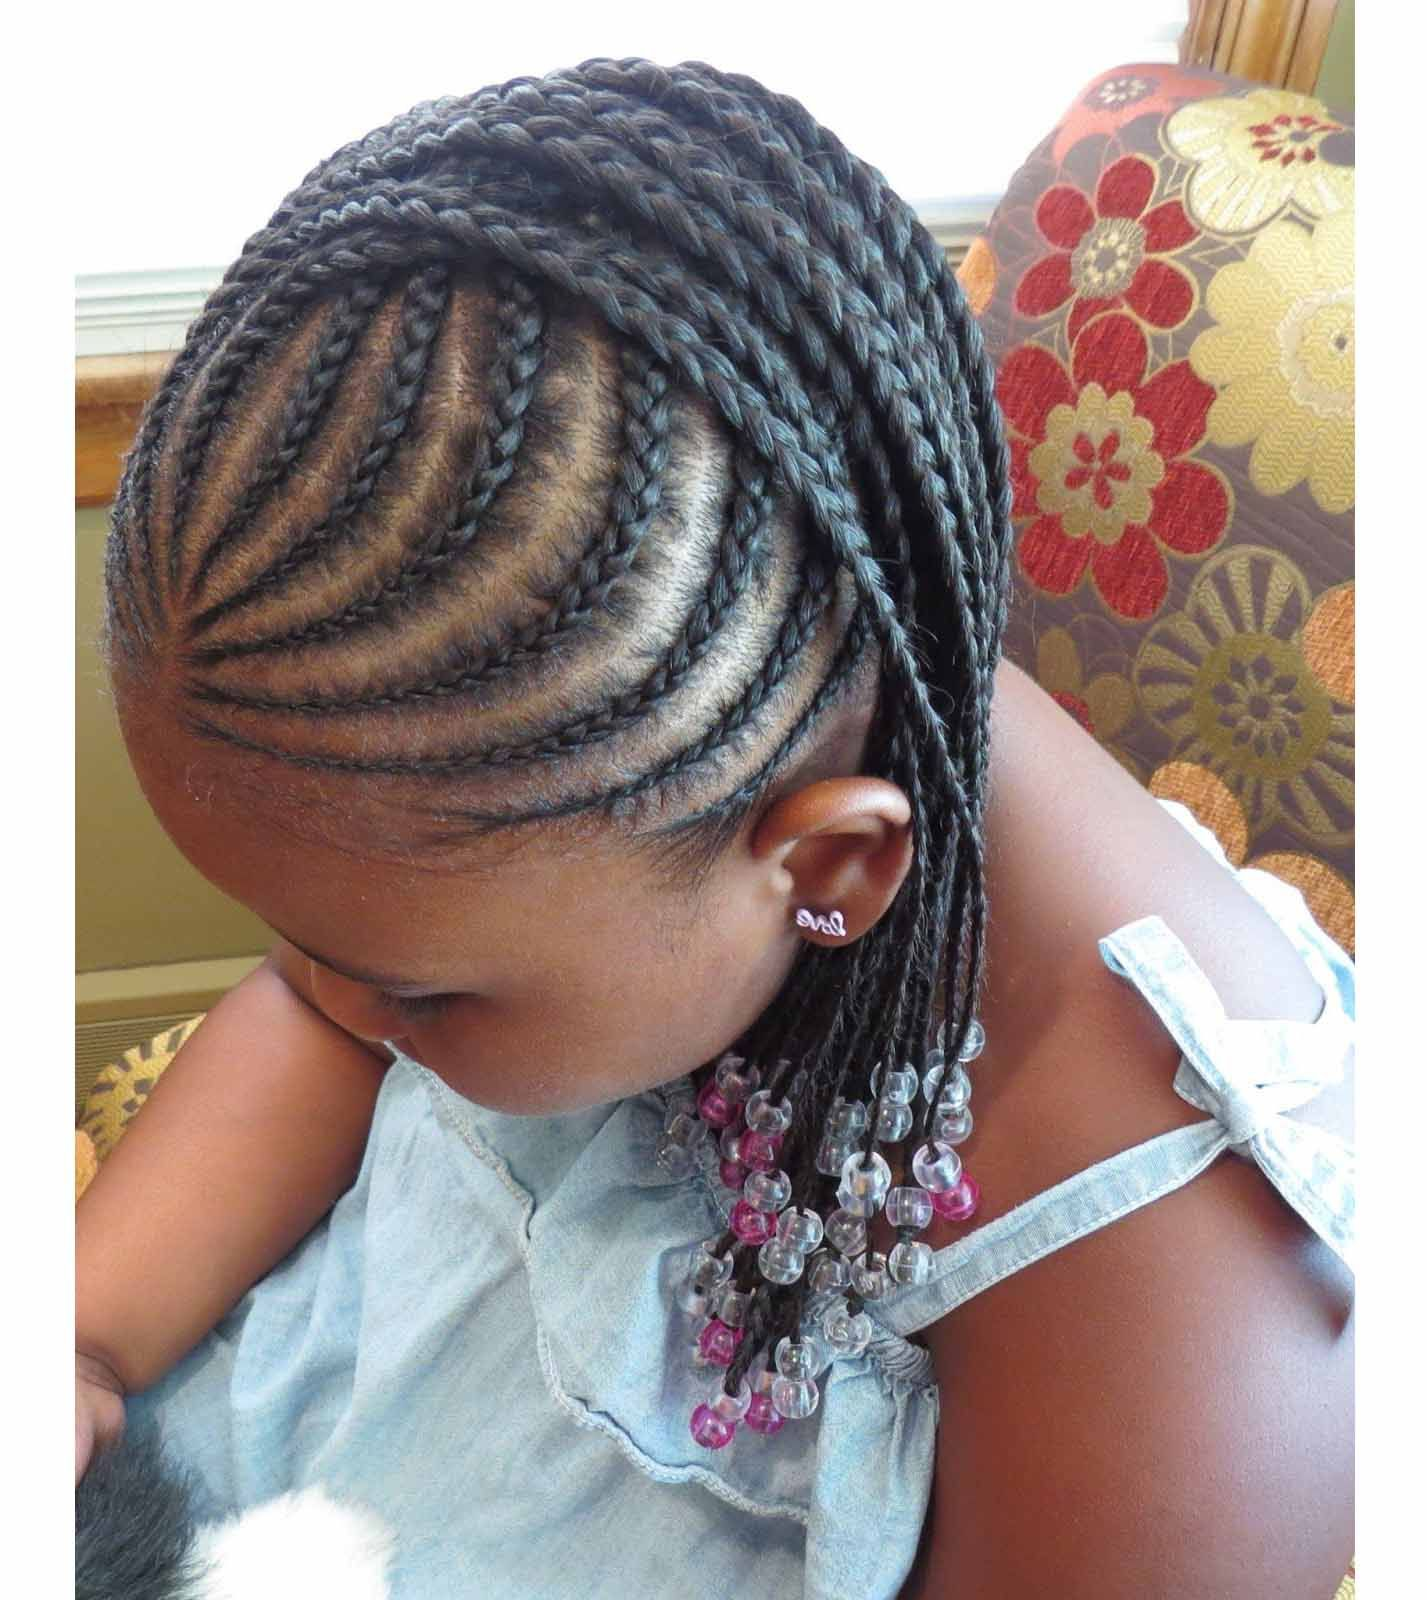 Tremendous 1000 Images About Hair Dos On Pinterest Protective Hairstyles Short Hairstyles Gunalazisus